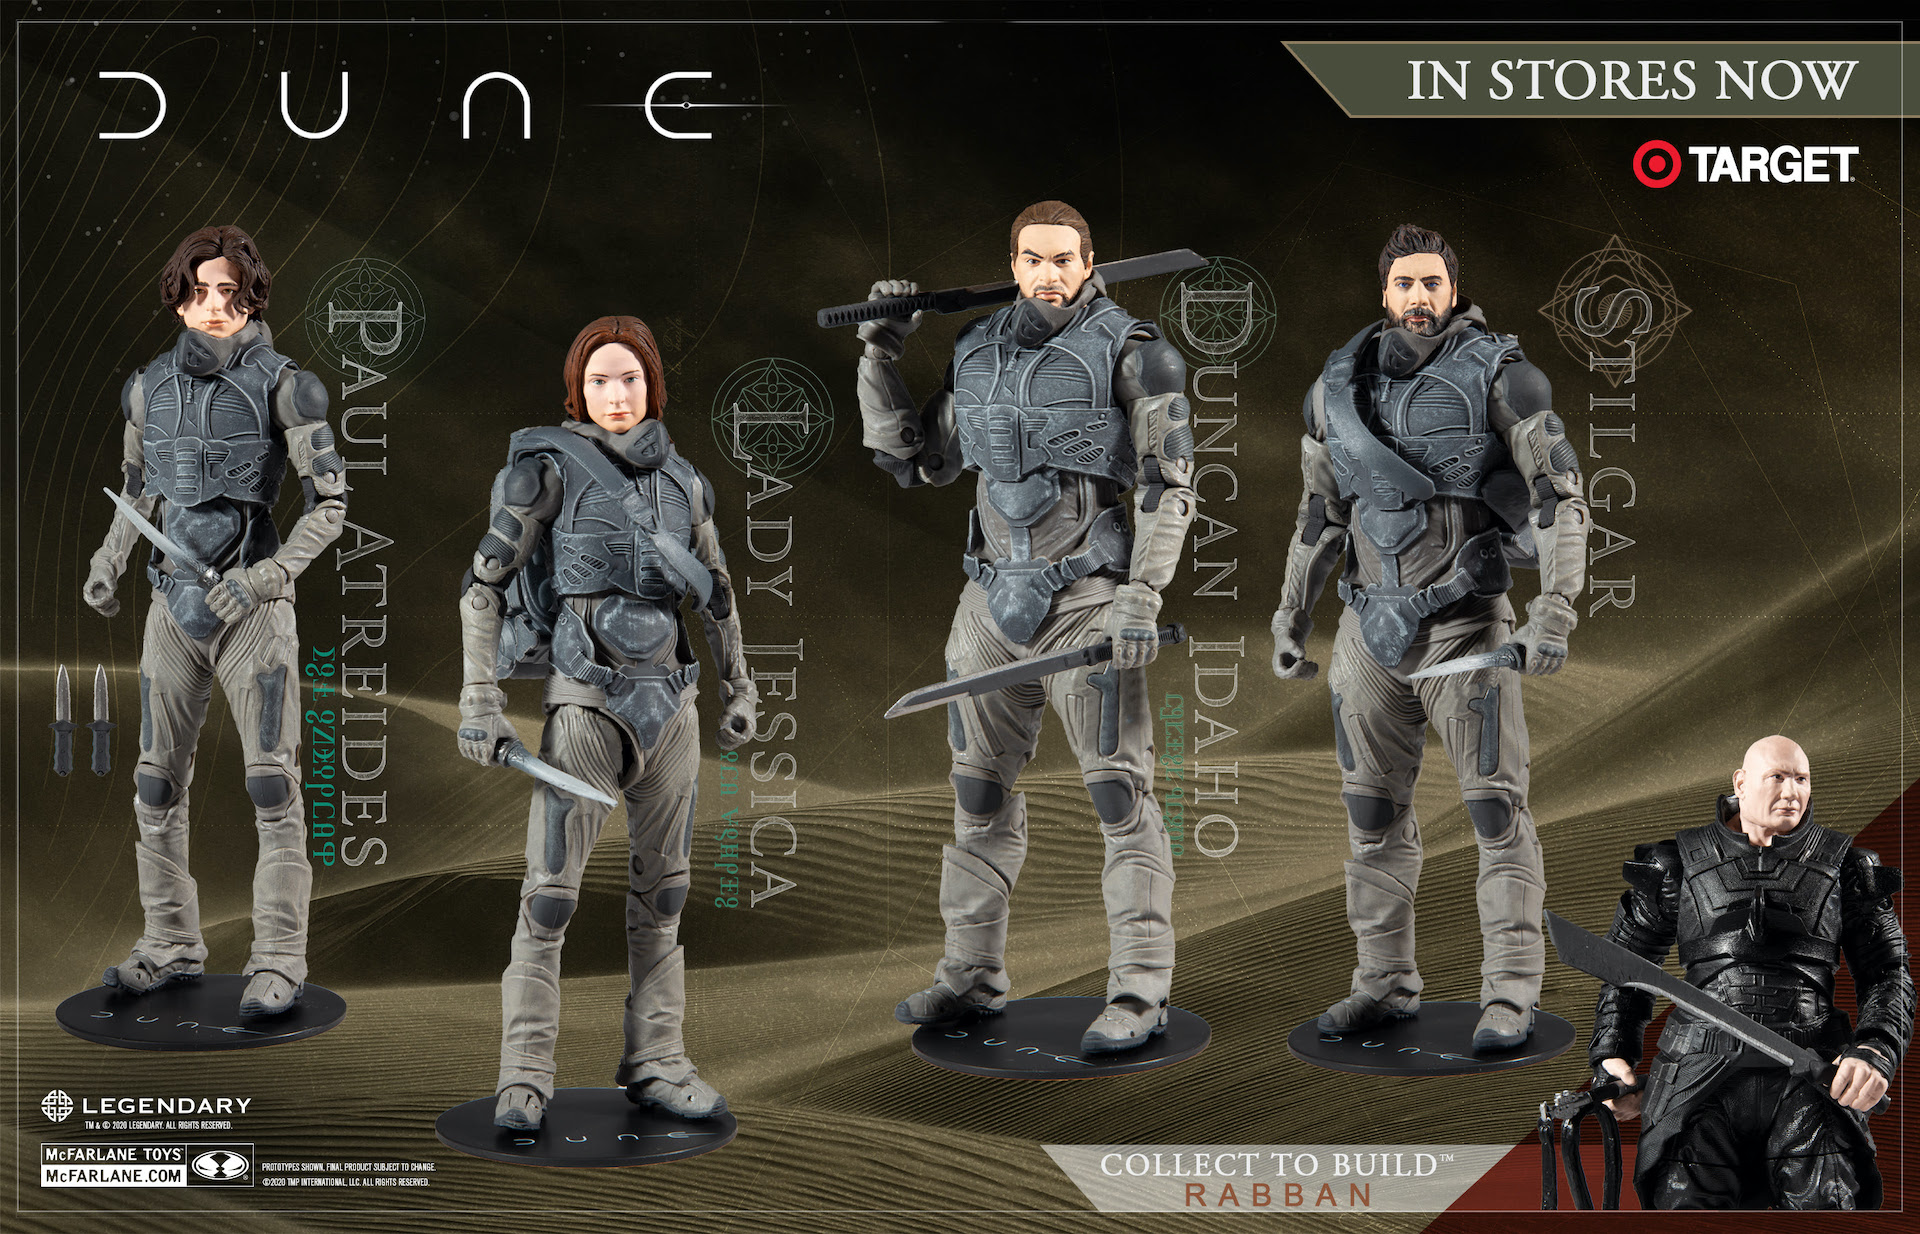 'Dune' the movie may be delayed but the McFarlane Toys are not